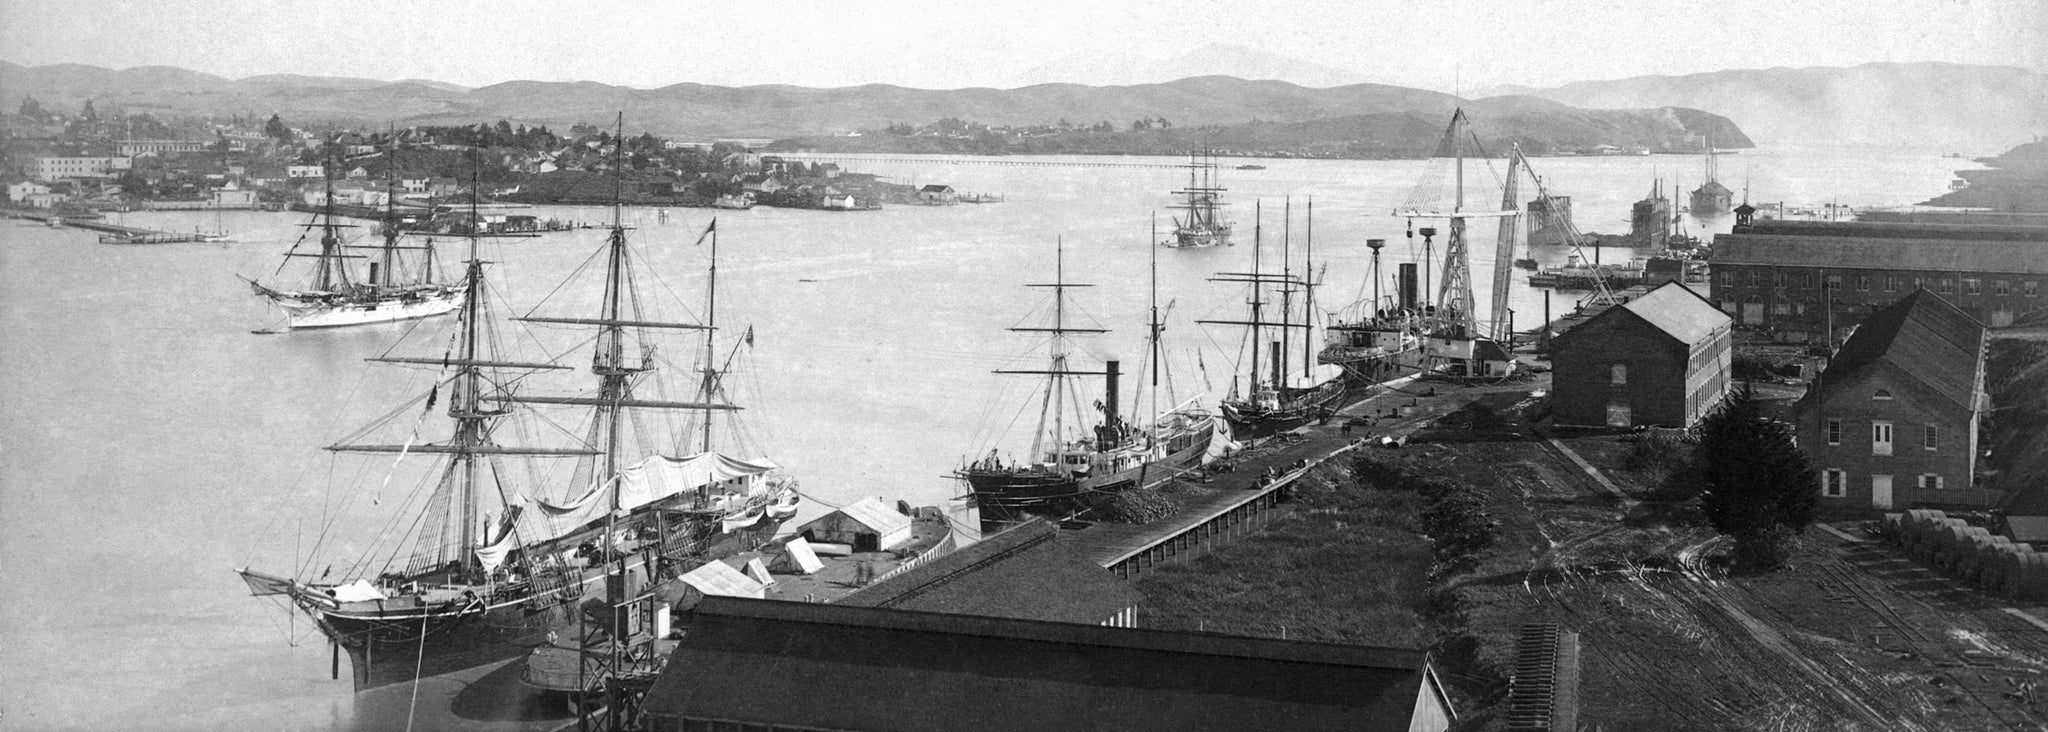 Mare Island waterfront looking south, 1890s. The USS Independence is pictured. Vallejo is visible across the Mare Island Straits. -- Courtesy Vallejo Naval and Historical Museum